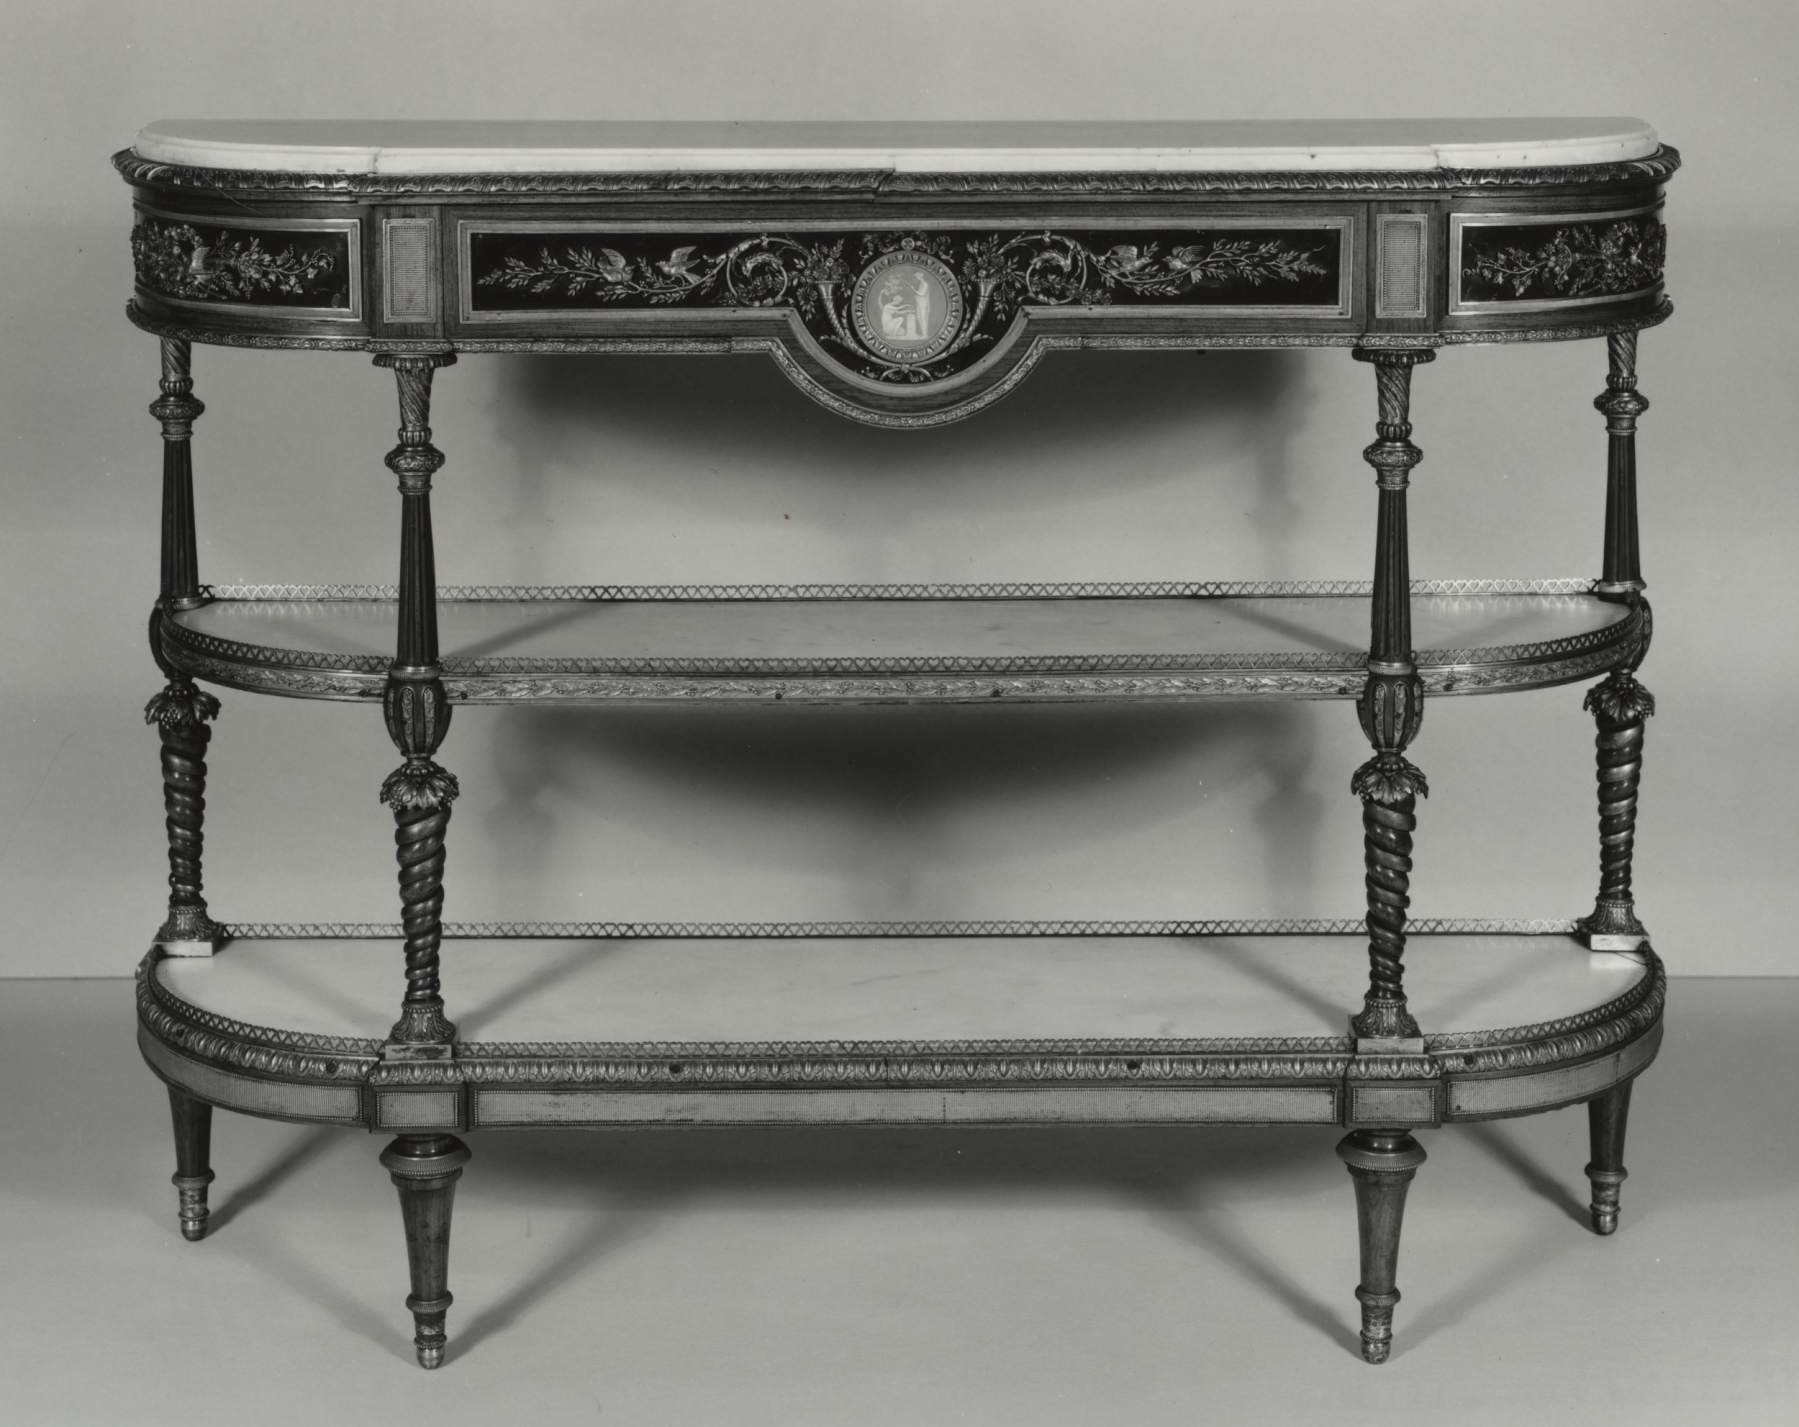 File:josiah Wedgwood – Console – Walters 6518 – Wikimedia Commons Regarding Walters Media Console Tables (View 4 of 20)